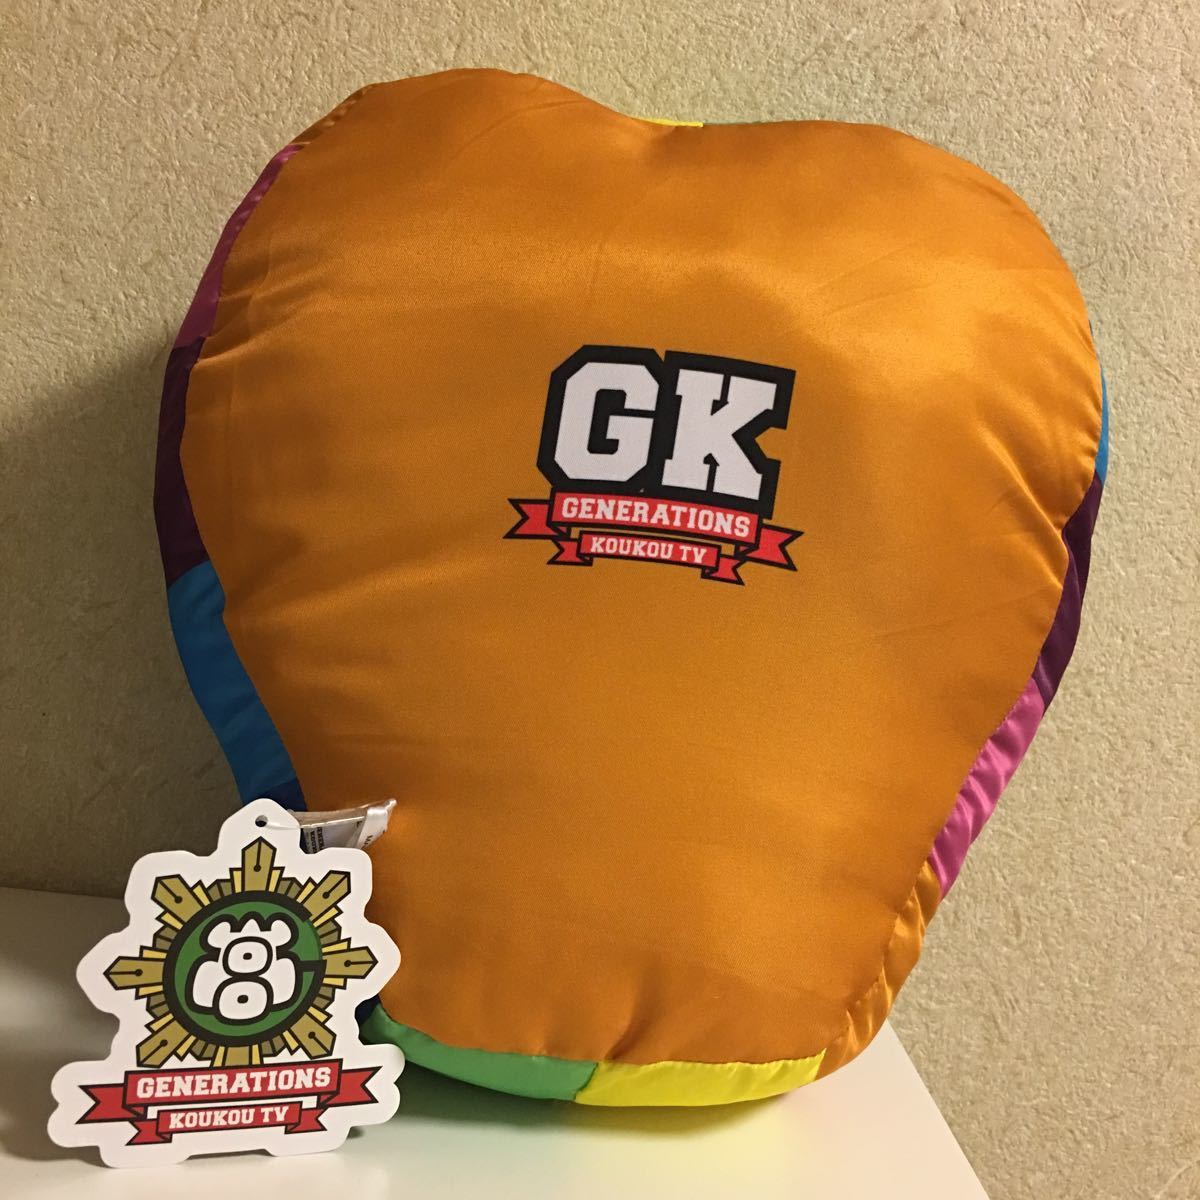 [ not for sale ] GENERATIONS high school TVda ikatto cushion .. men ti- prompt decision jene dog